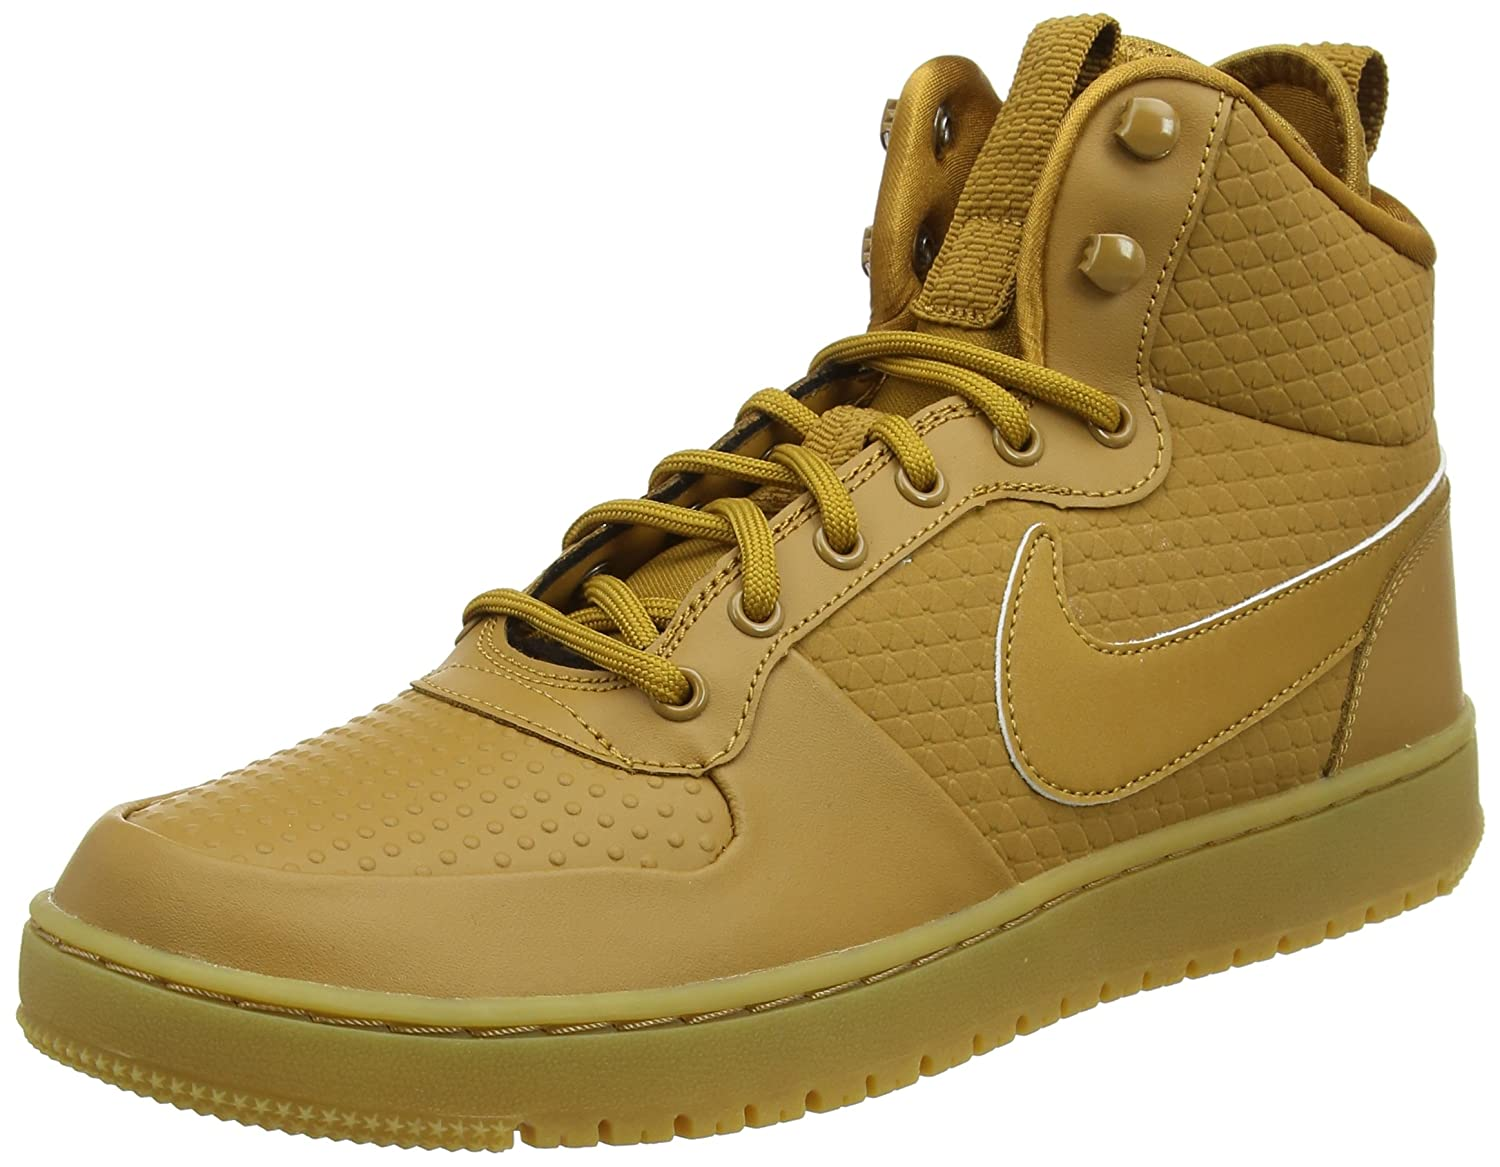 9b779eca74d64 Nike Court Borough Mid Winter Mens Basketball Shoes  Amazon.ca  Shoes    Handbags